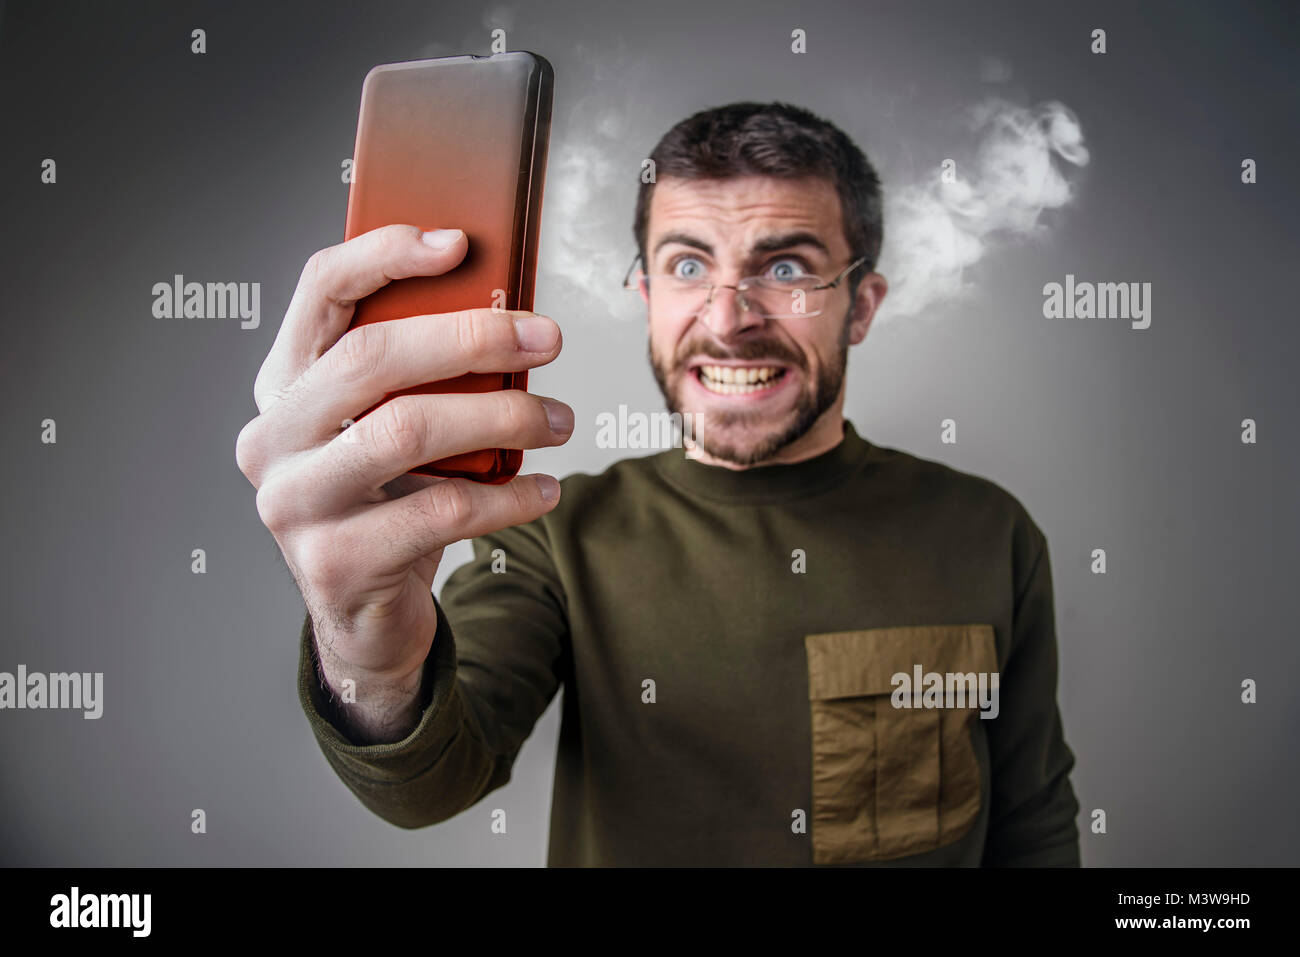 Steaming with rage, man yelling at his phone - Stock Image